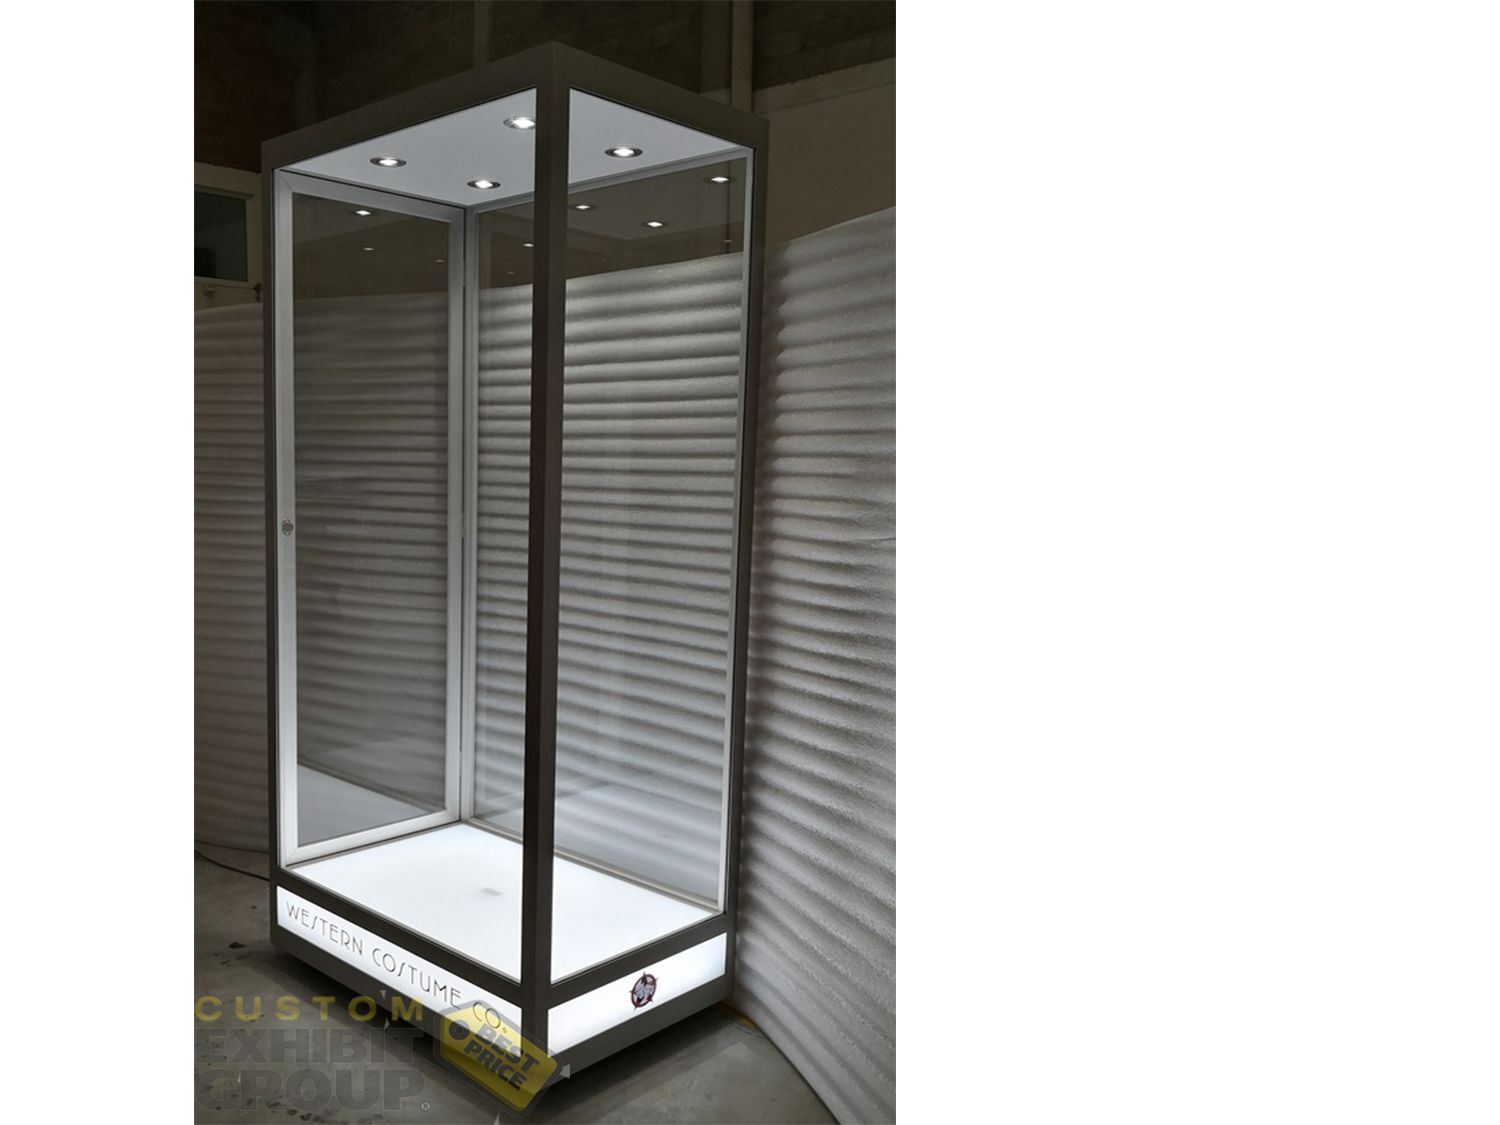 mannequin display cabinet with adjustable led light showcases rh pinterest com